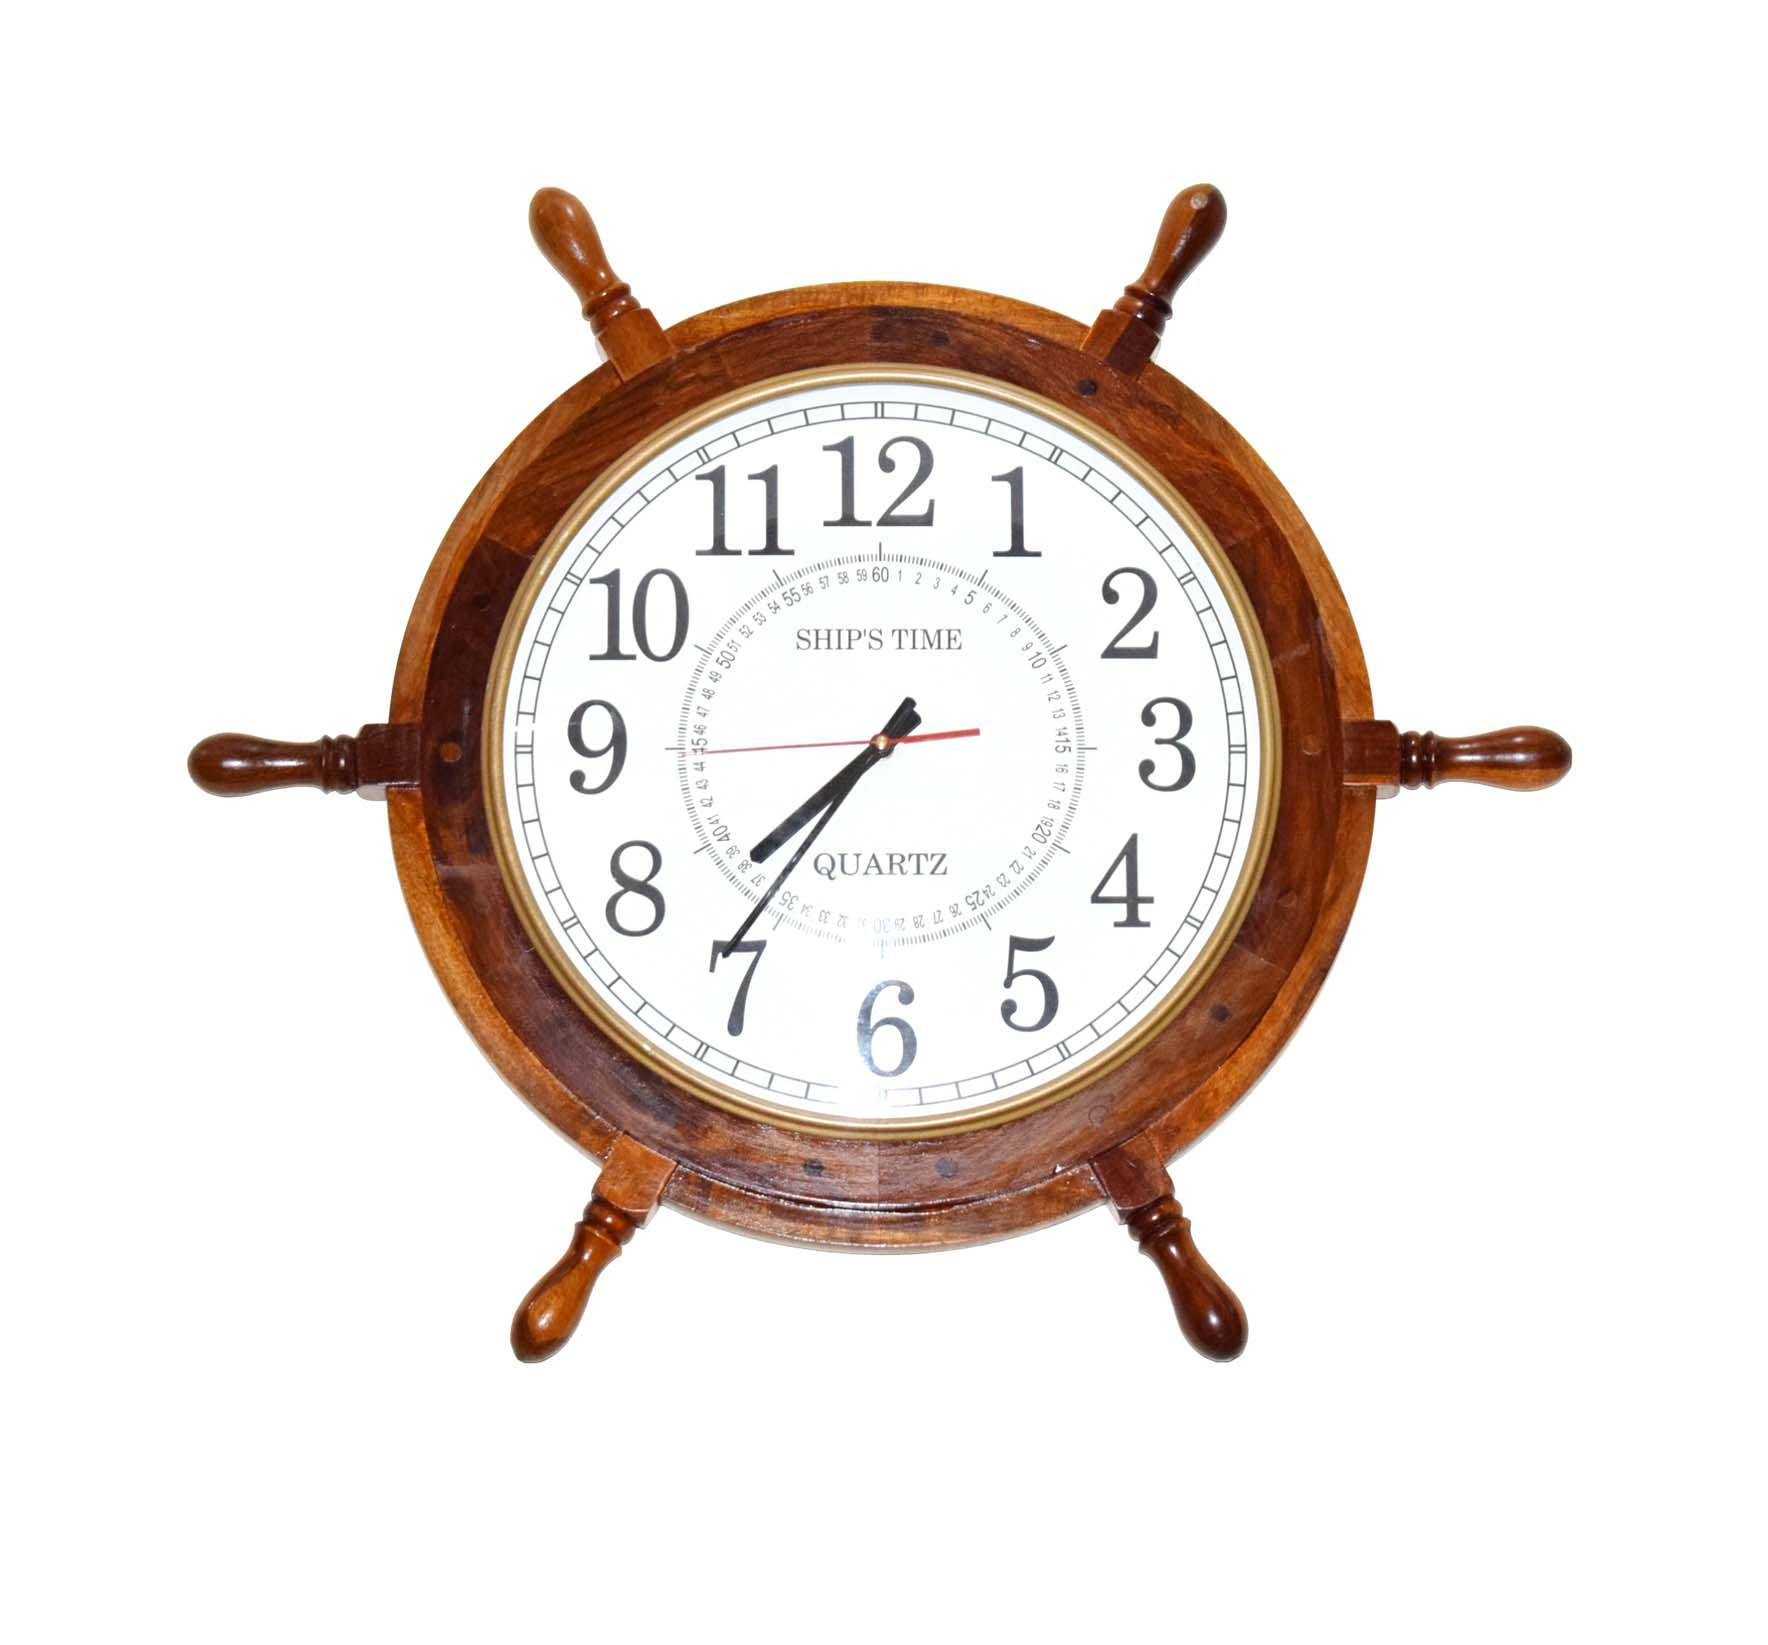 "24"" Large Ship Wheel Wooden Wall Clock Made Of High Quality Mango Wood Completely Finished product."